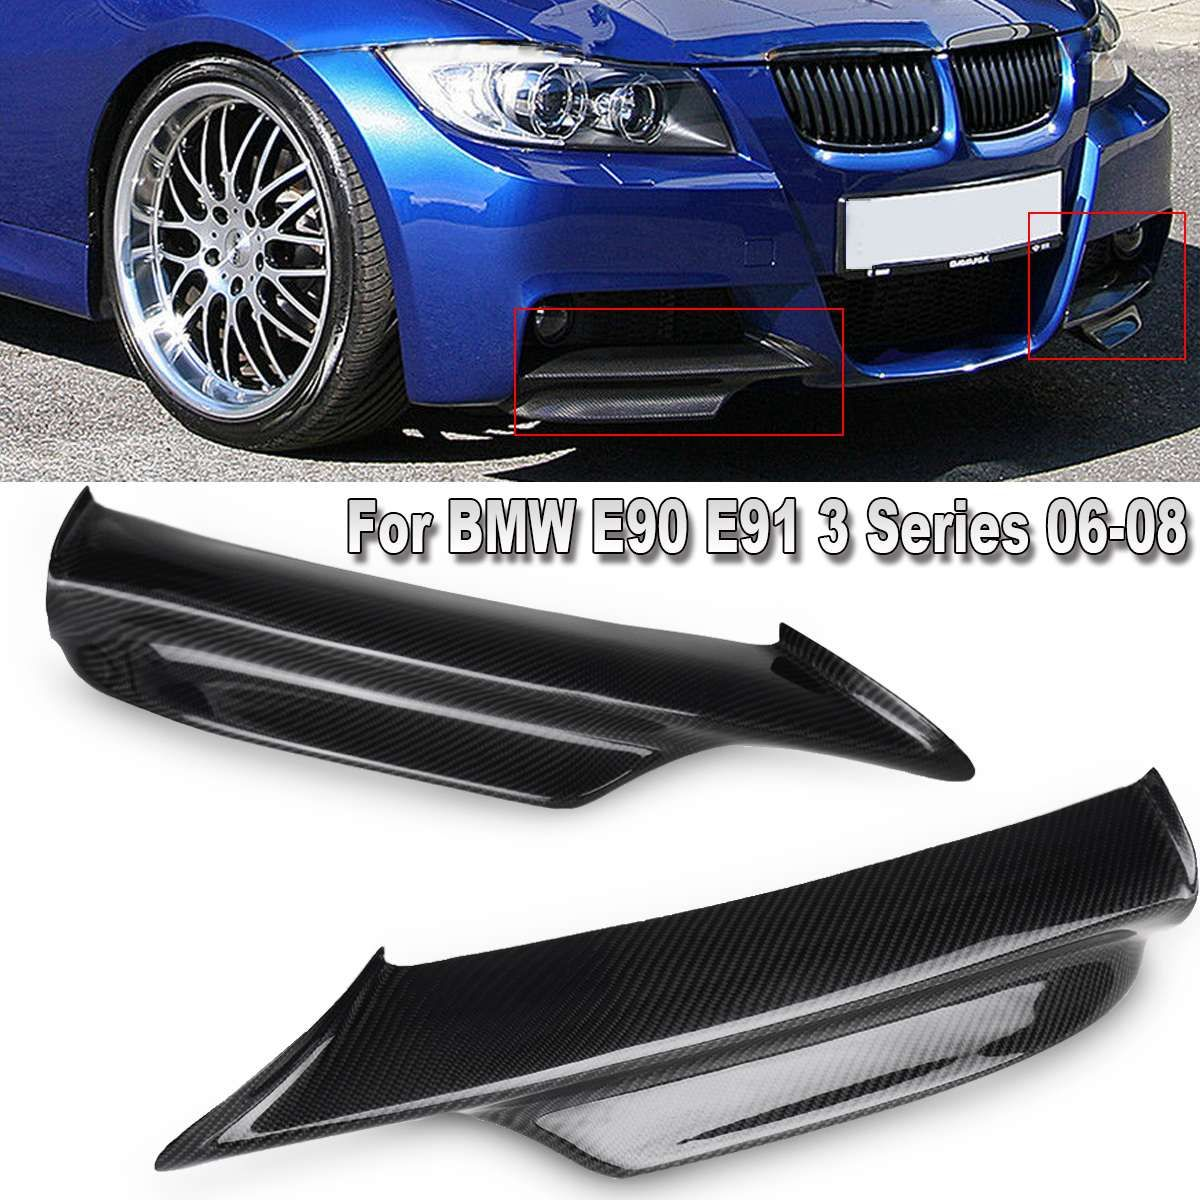 New Black Carbon Fiber Front Bumper Splitters for BMW E90 E91 3 Series 2006 2007 2008